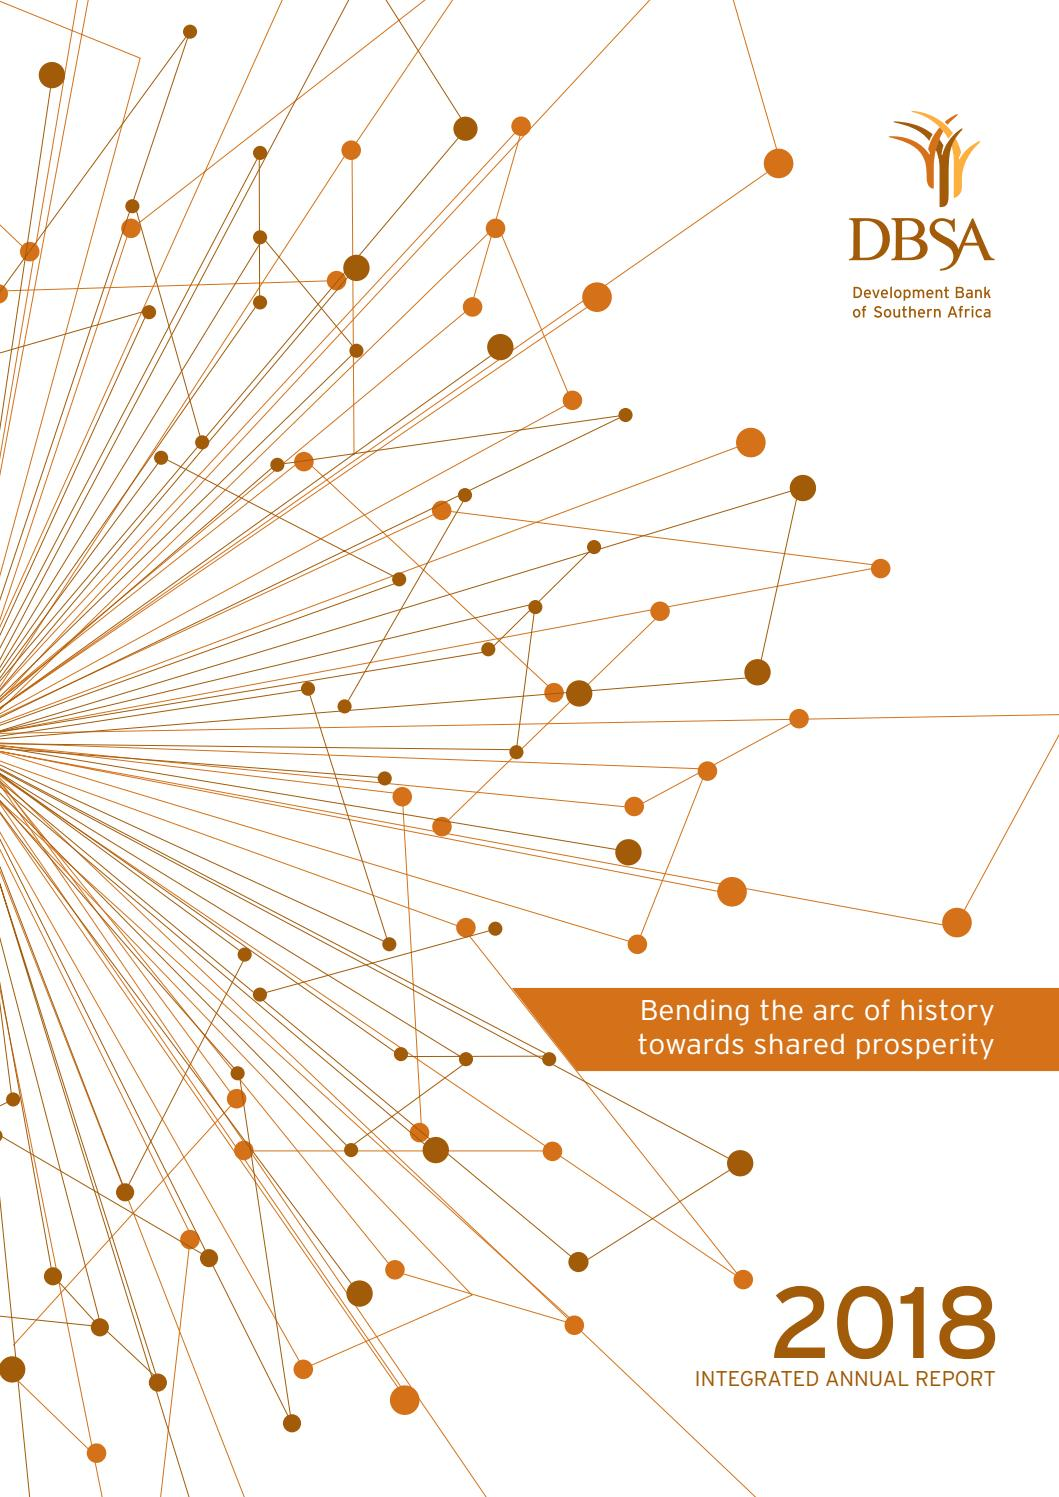 DBSA Integrated Annual Report 2017/18 by Development Bank of